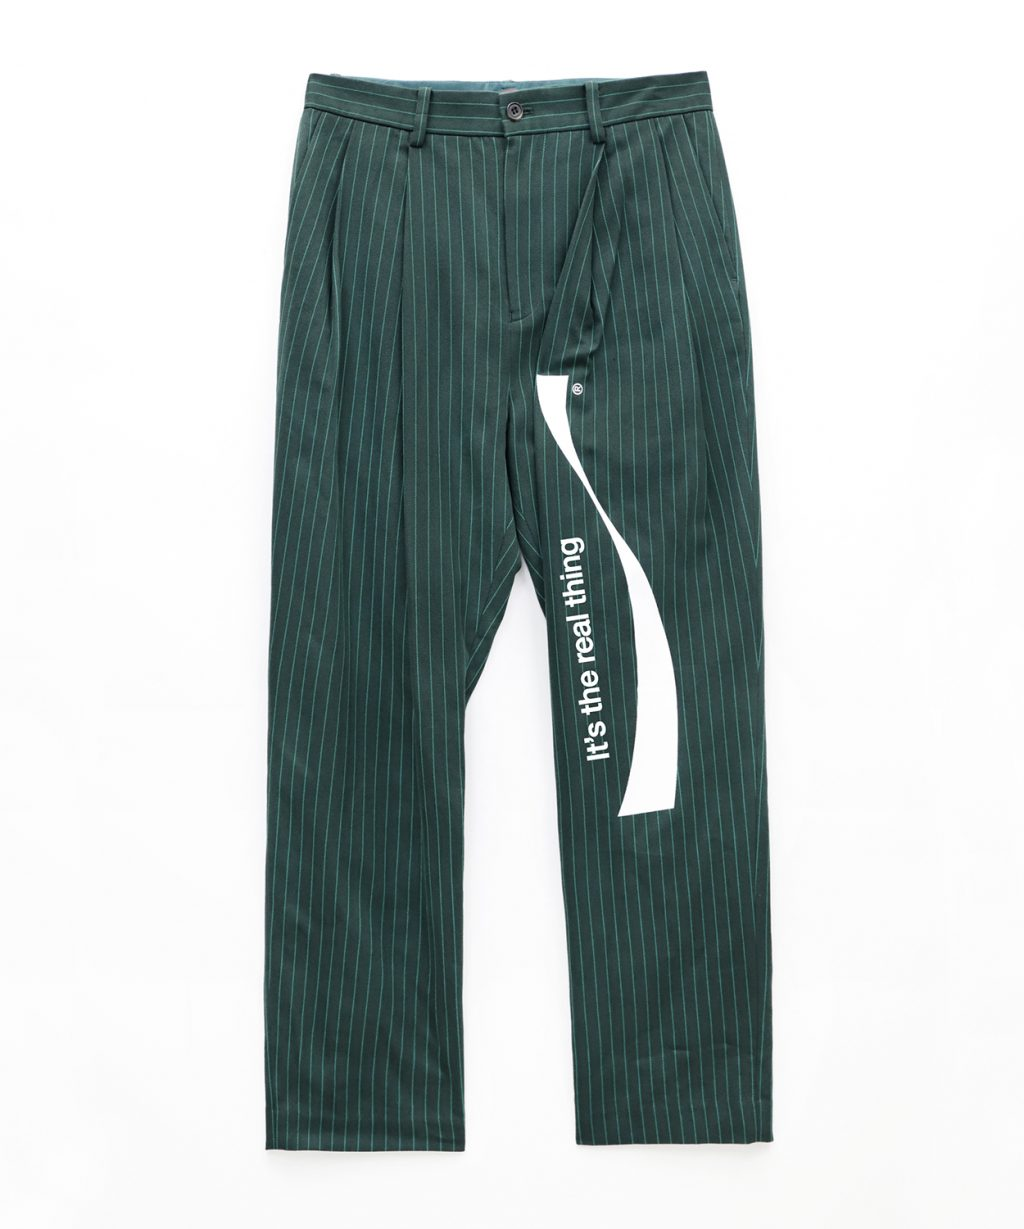 TWO-TUCK-STRIPE-PANTS-green1-1024x1229.jpg